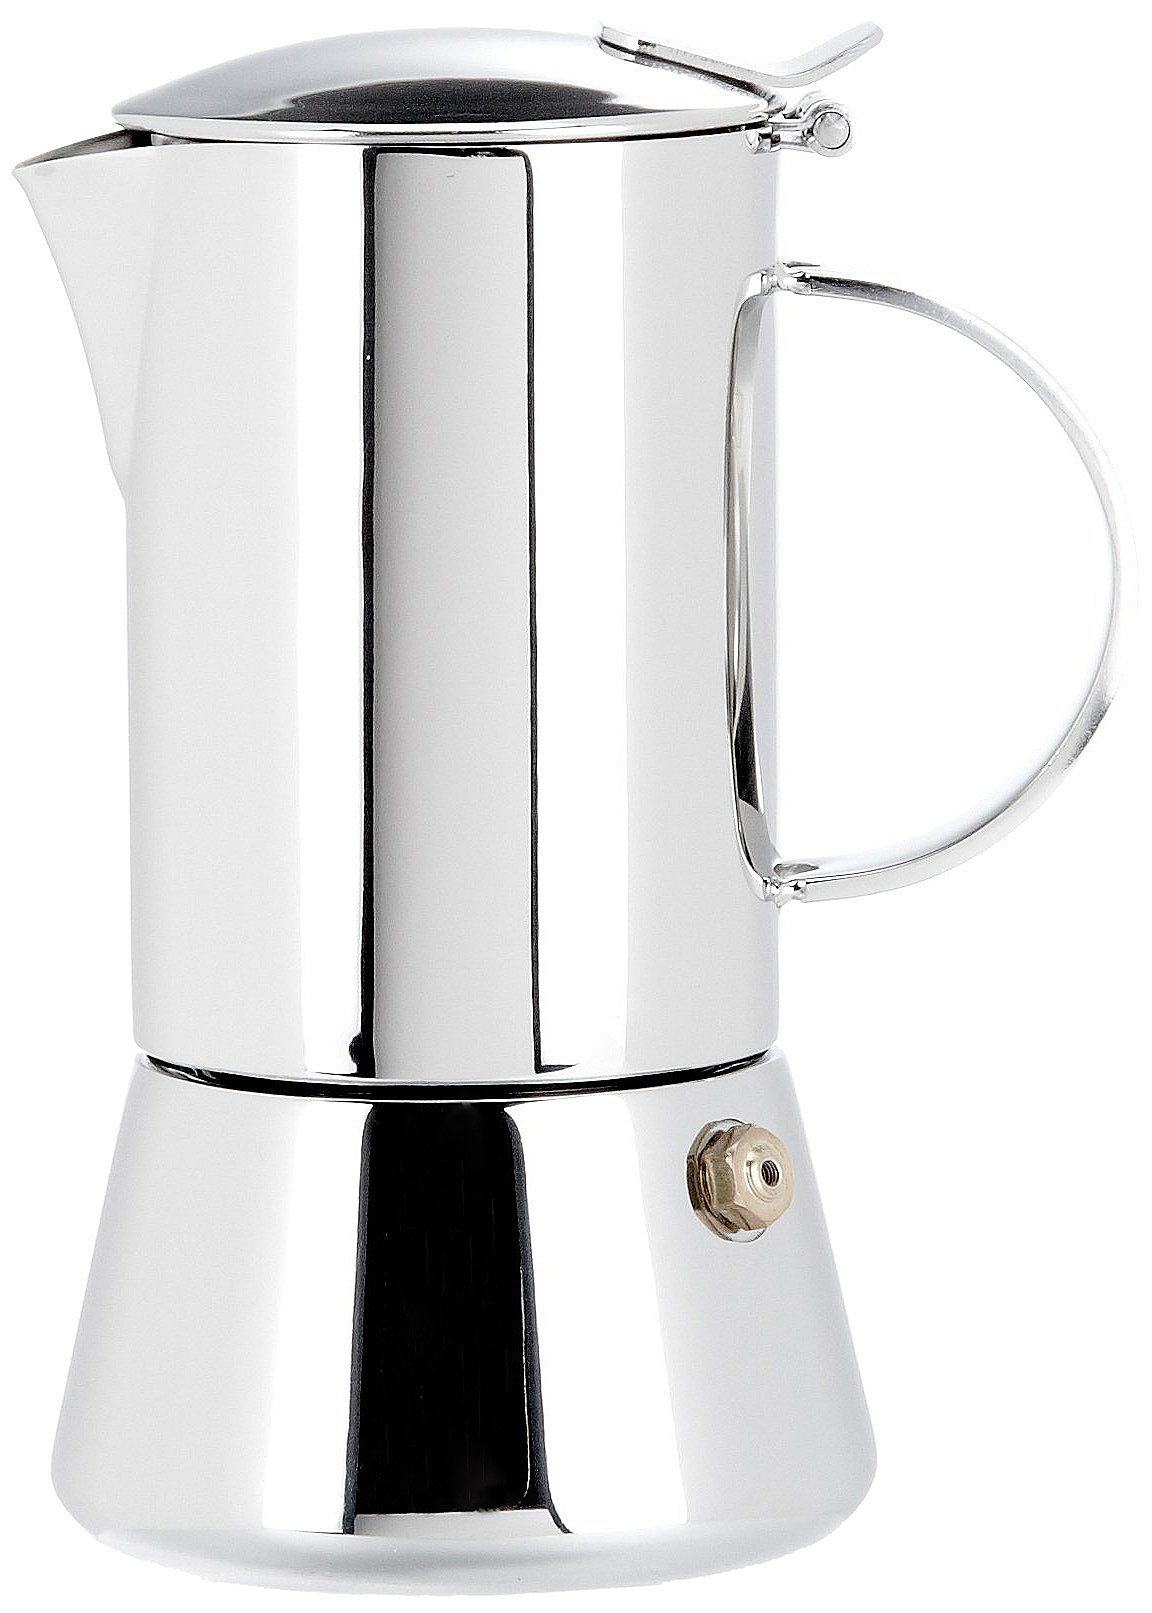 Cilio Aida Stainless Steel 2 Cup Espresso Maker Cafetiere CI342239